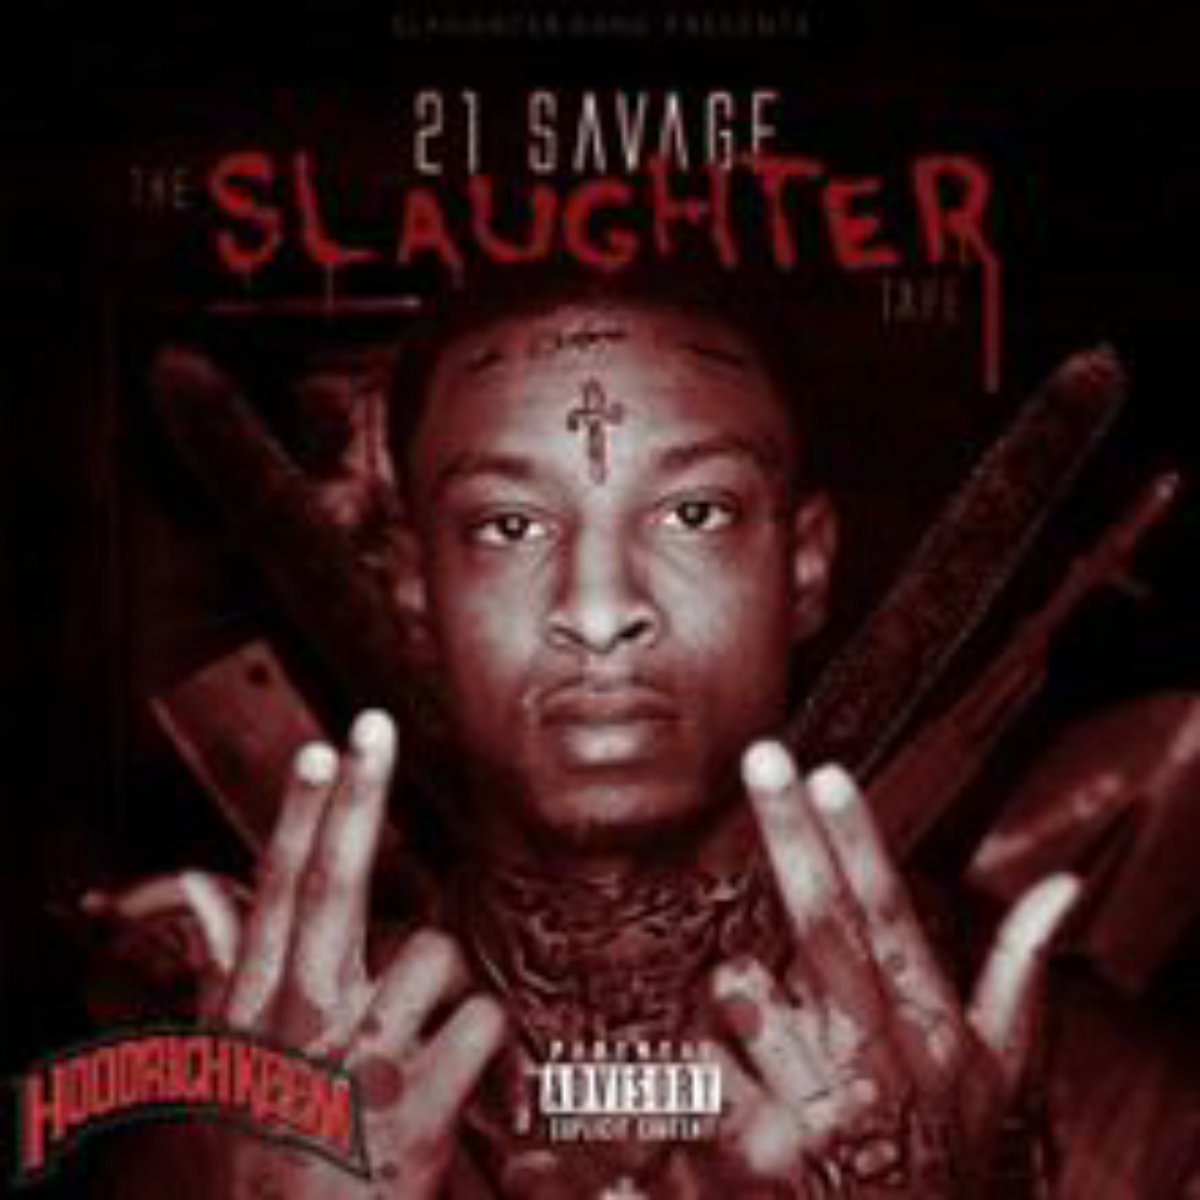 21 savage the dripped tonny worrell 21 savage the dripped